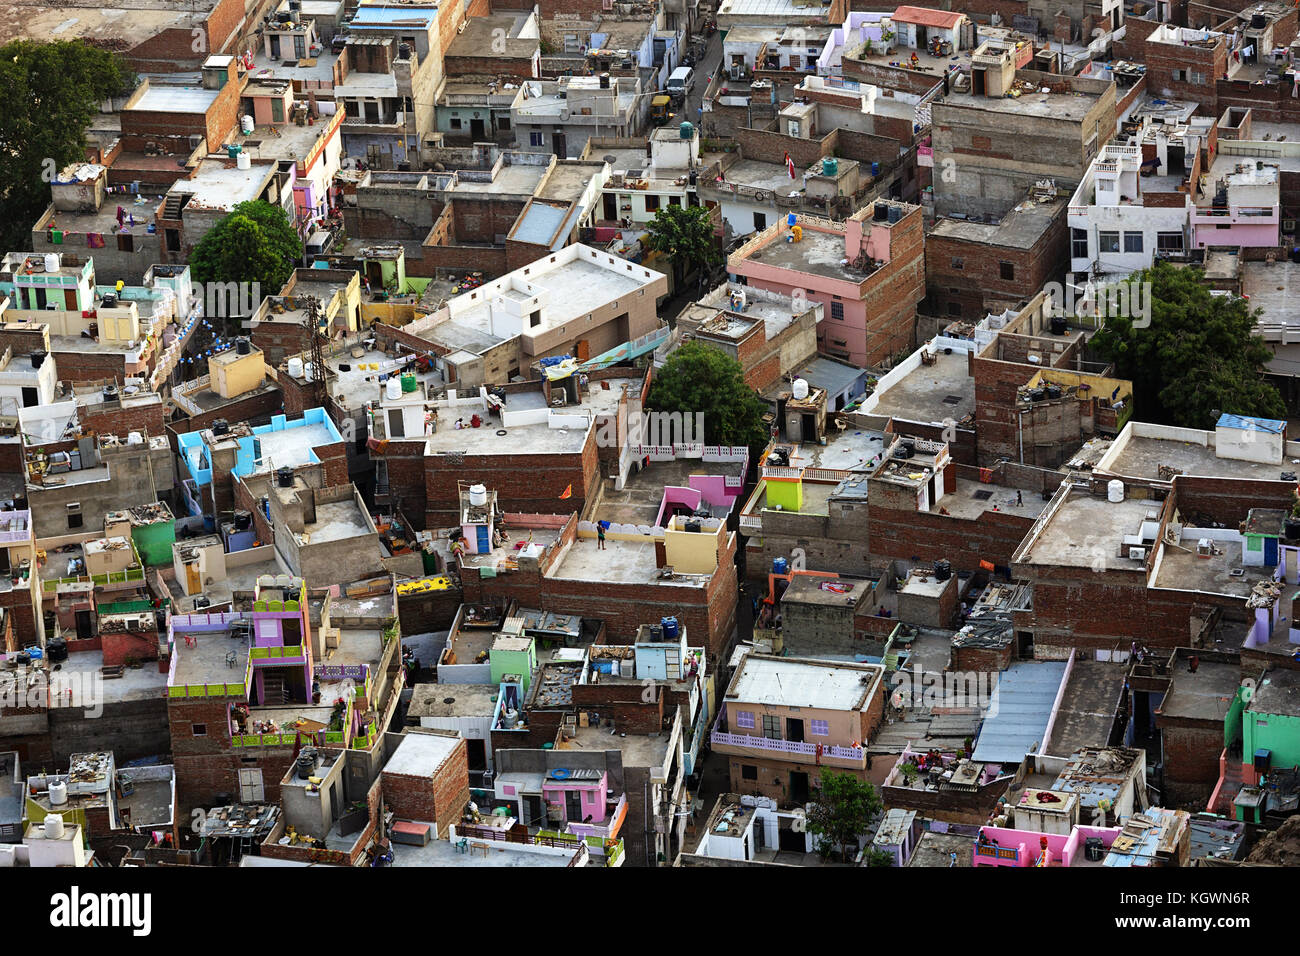 Aerial view of the houses in Jaipur, people living everyday life, Rajasthan, India. - Stock Image